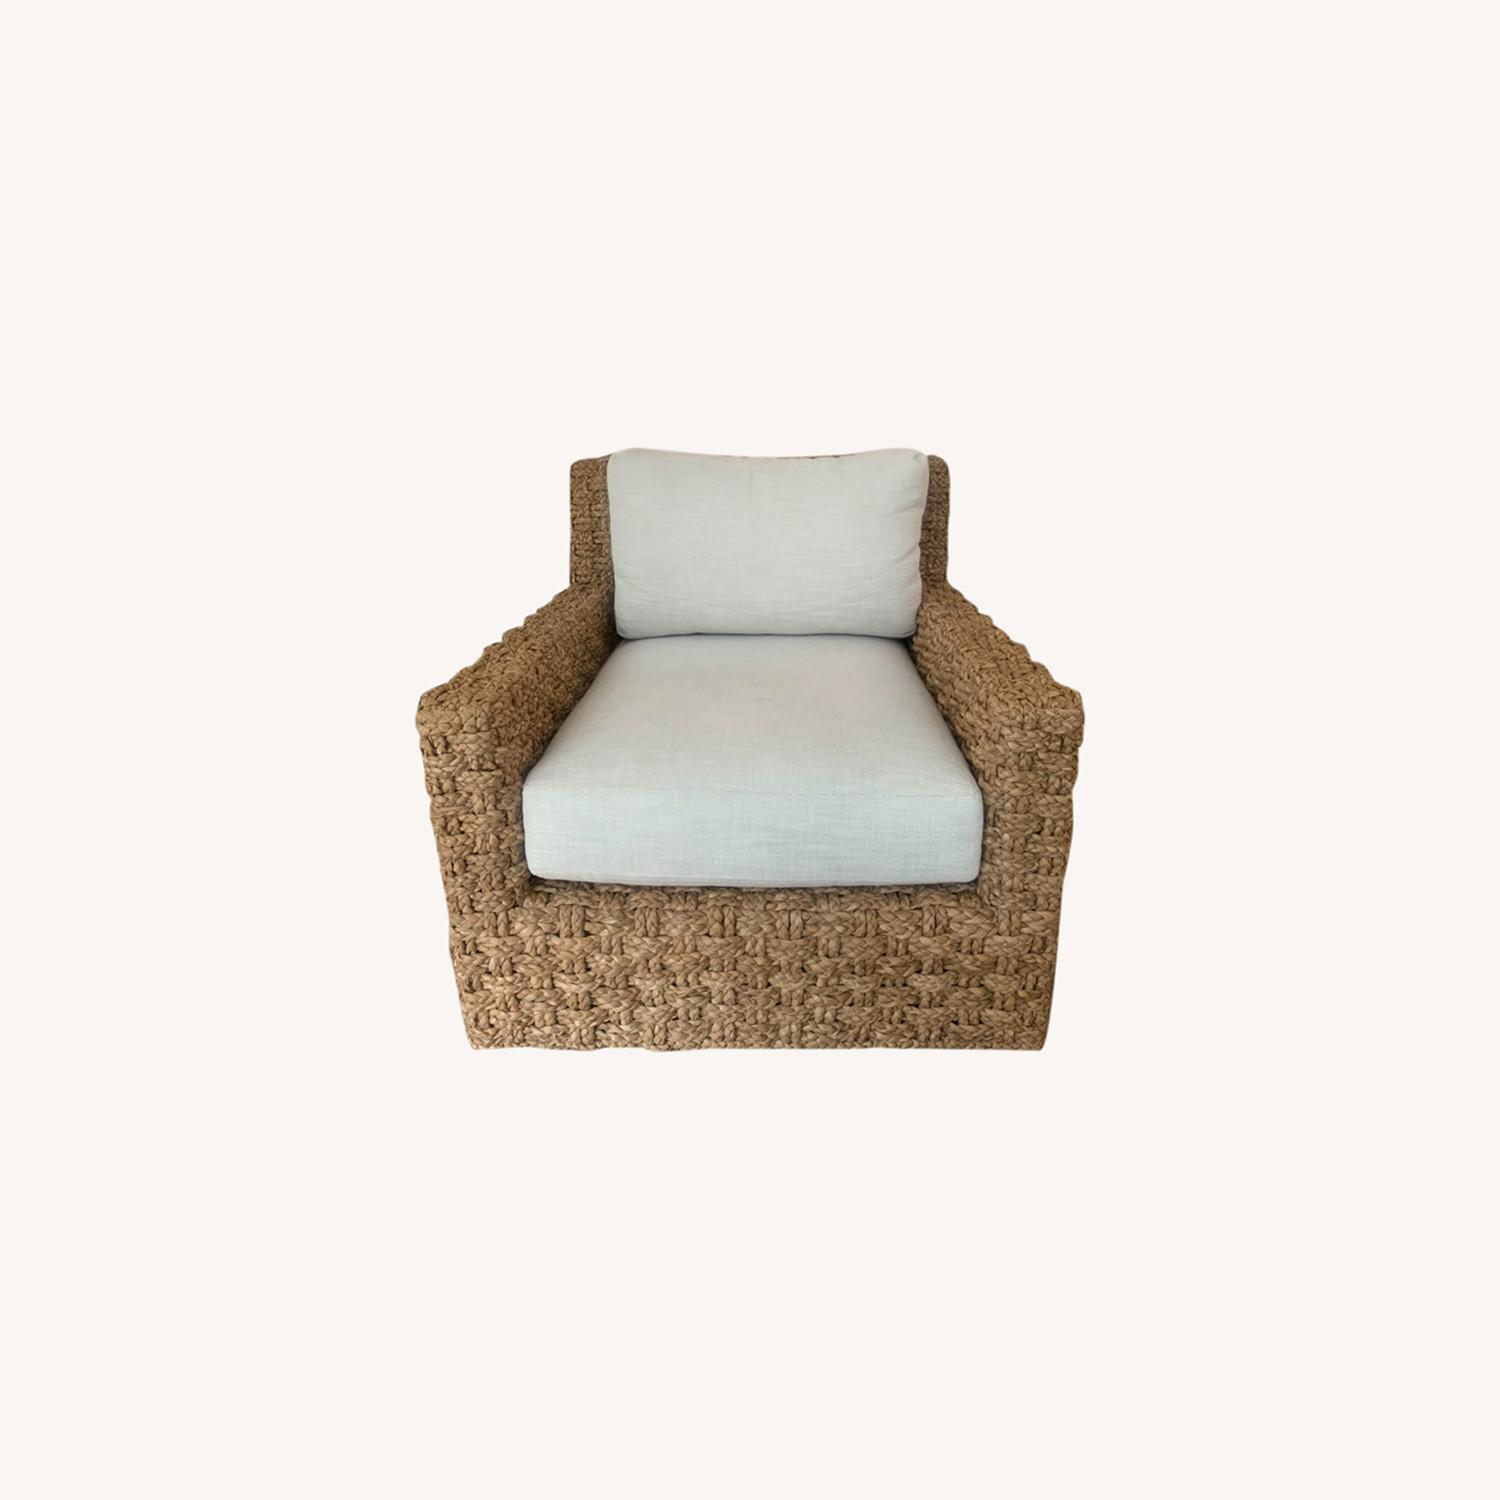 Serena & Lily Costa Lounge Chair - image-0